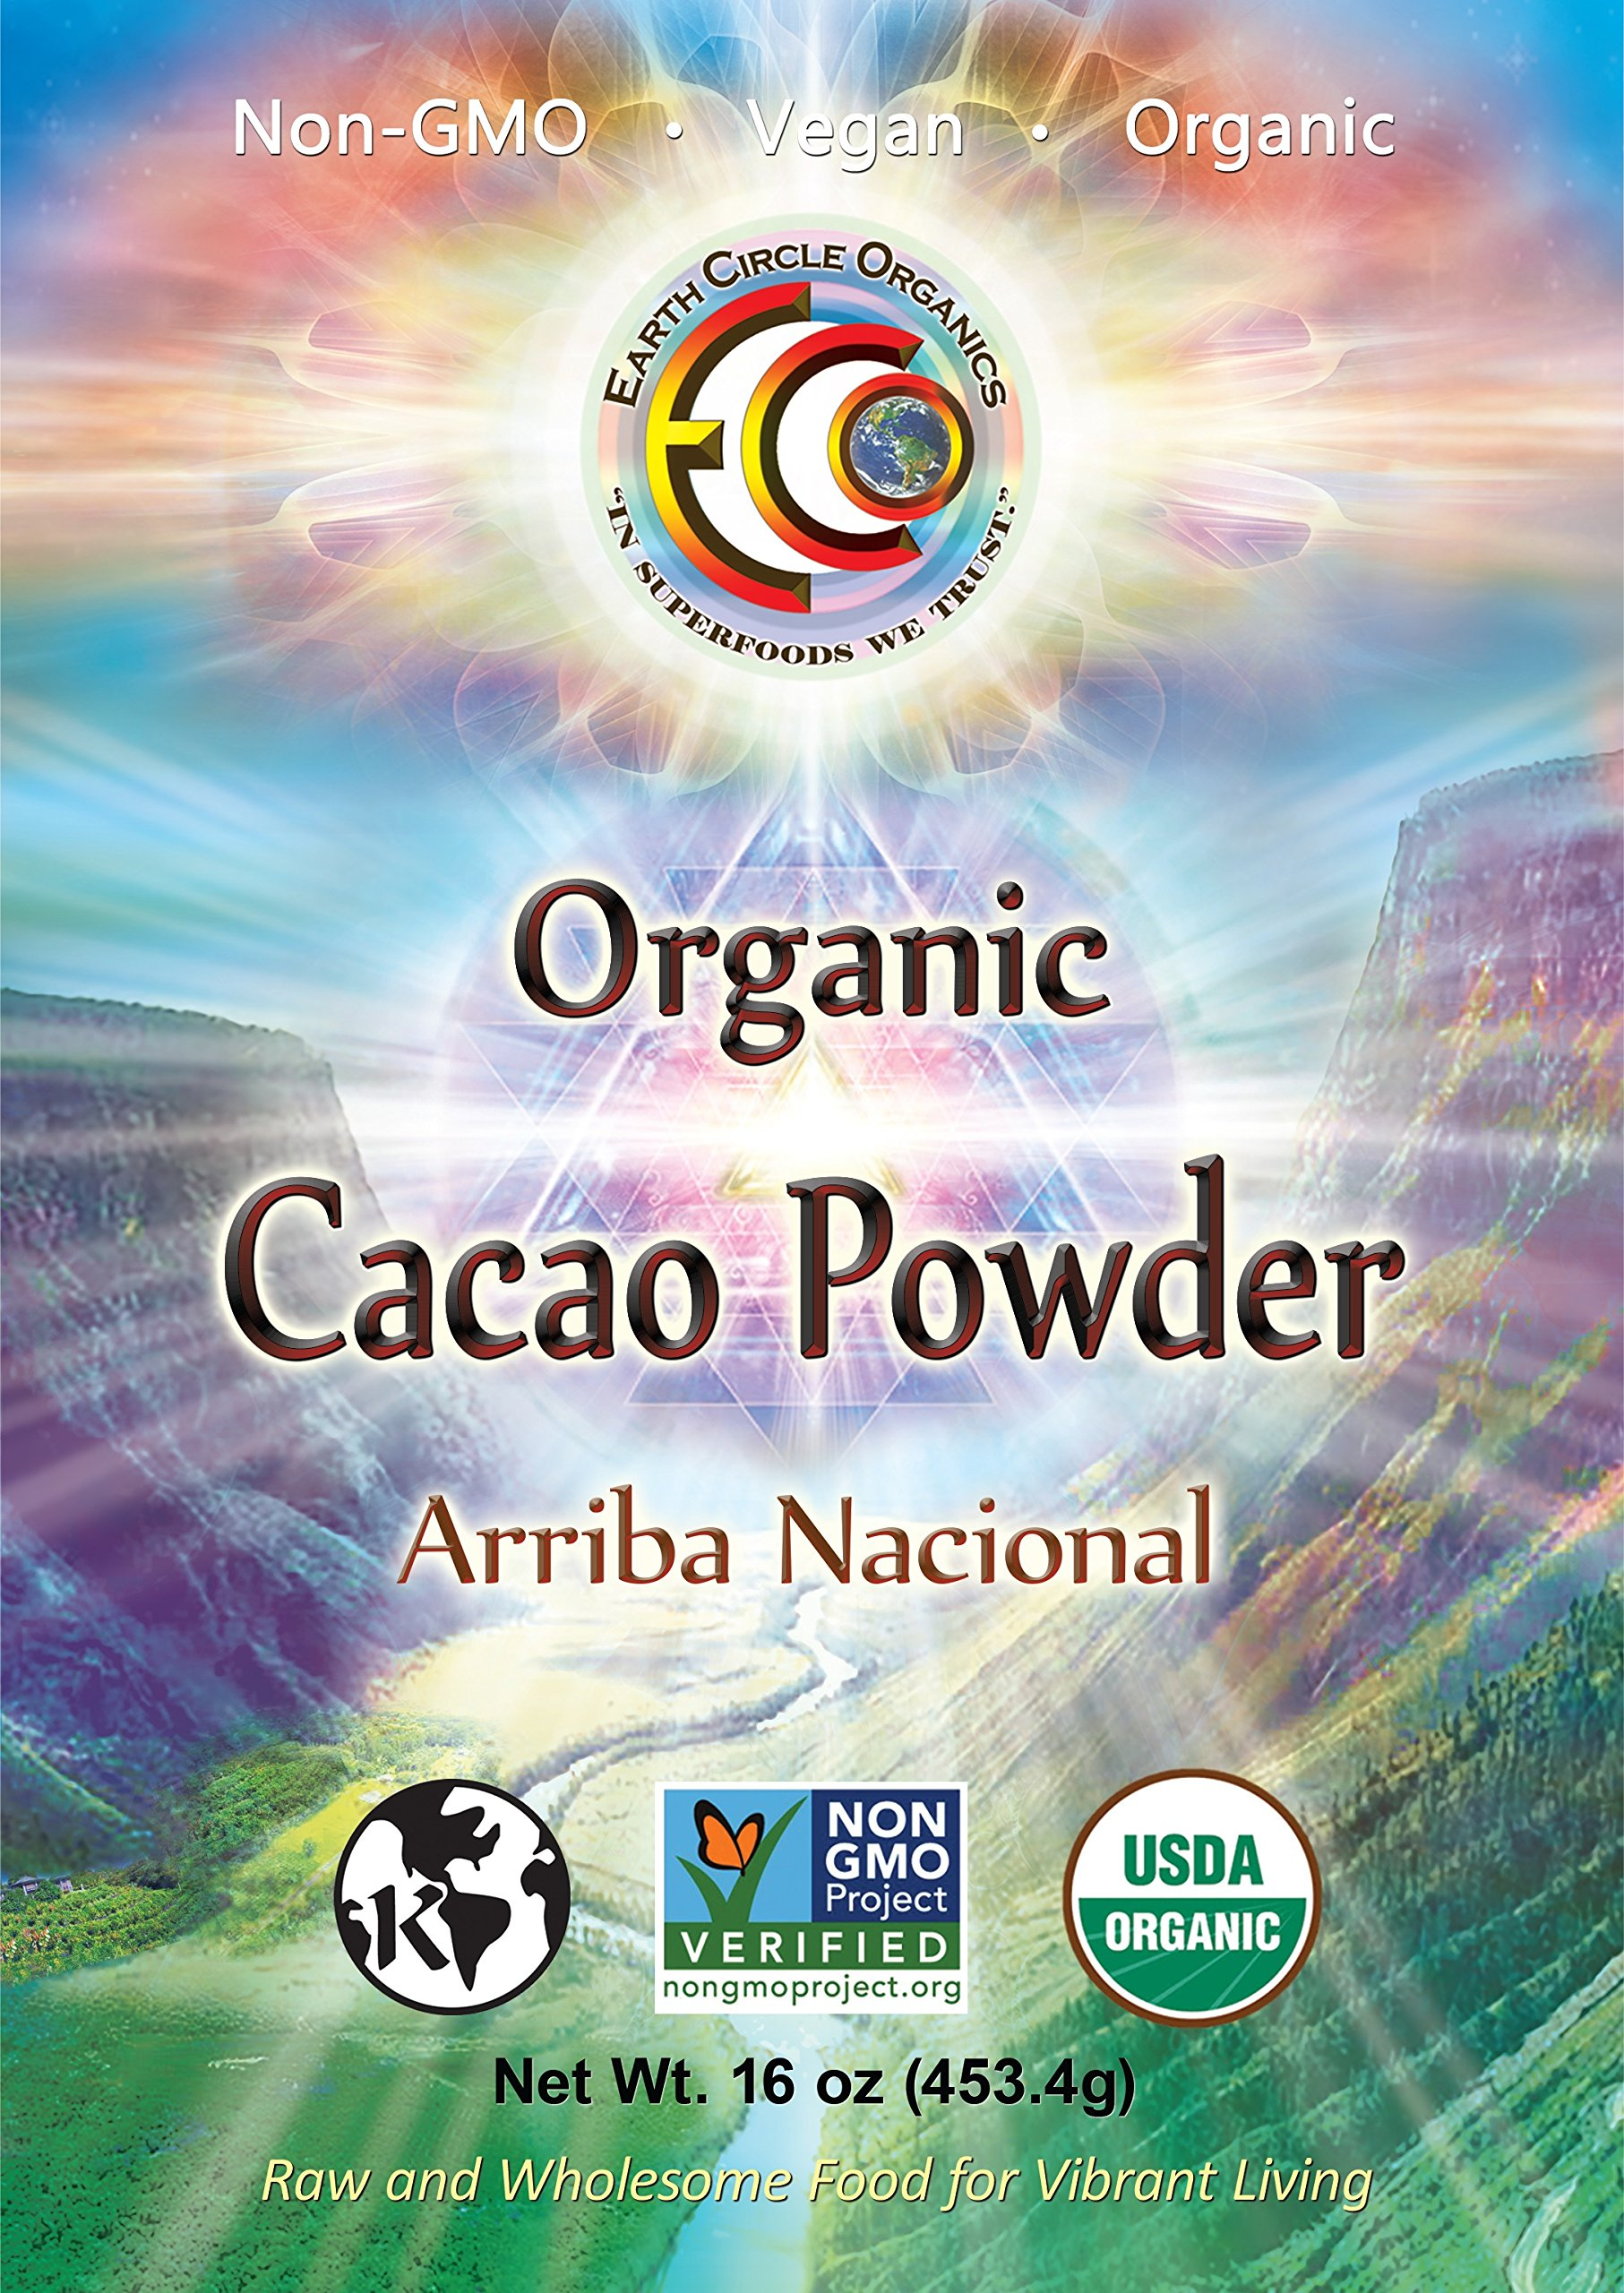 Earth Circle Organics Ecuadorian Cacao Powder, 16 Ounce (454g) Pure Unsweetened Organic Antioxidant Superfood for Smoothies and Baking